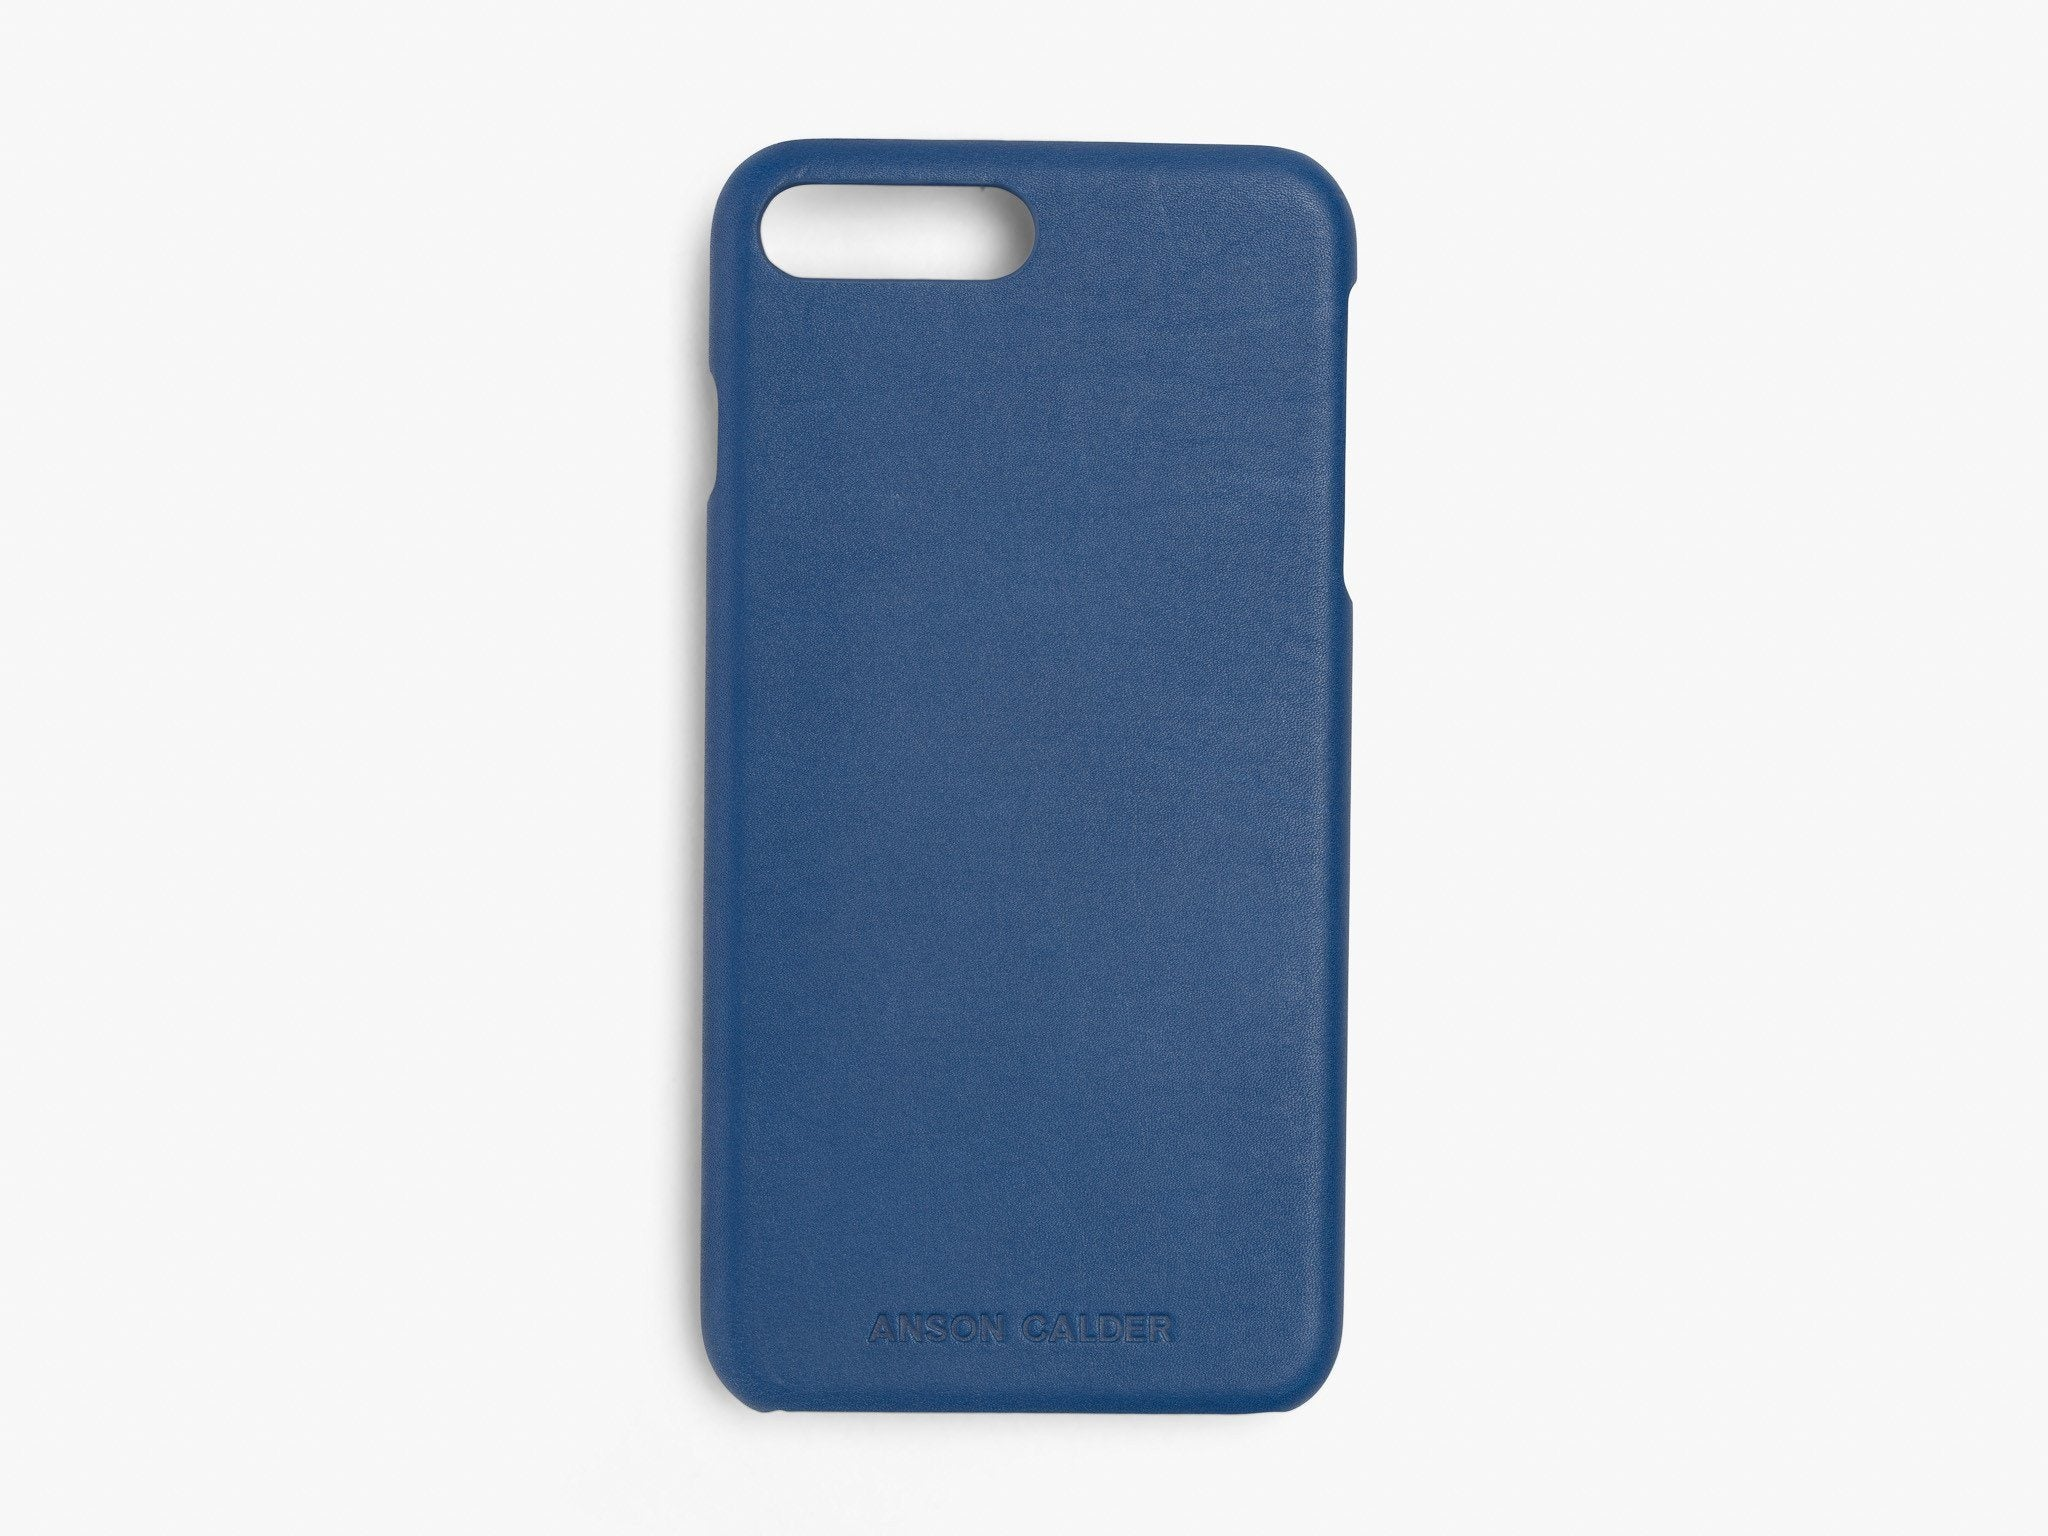 CALFSKIN iPHONE CASE CASES ANSON CALDER iPhone 6 Plus !iphone7plus _cobalt